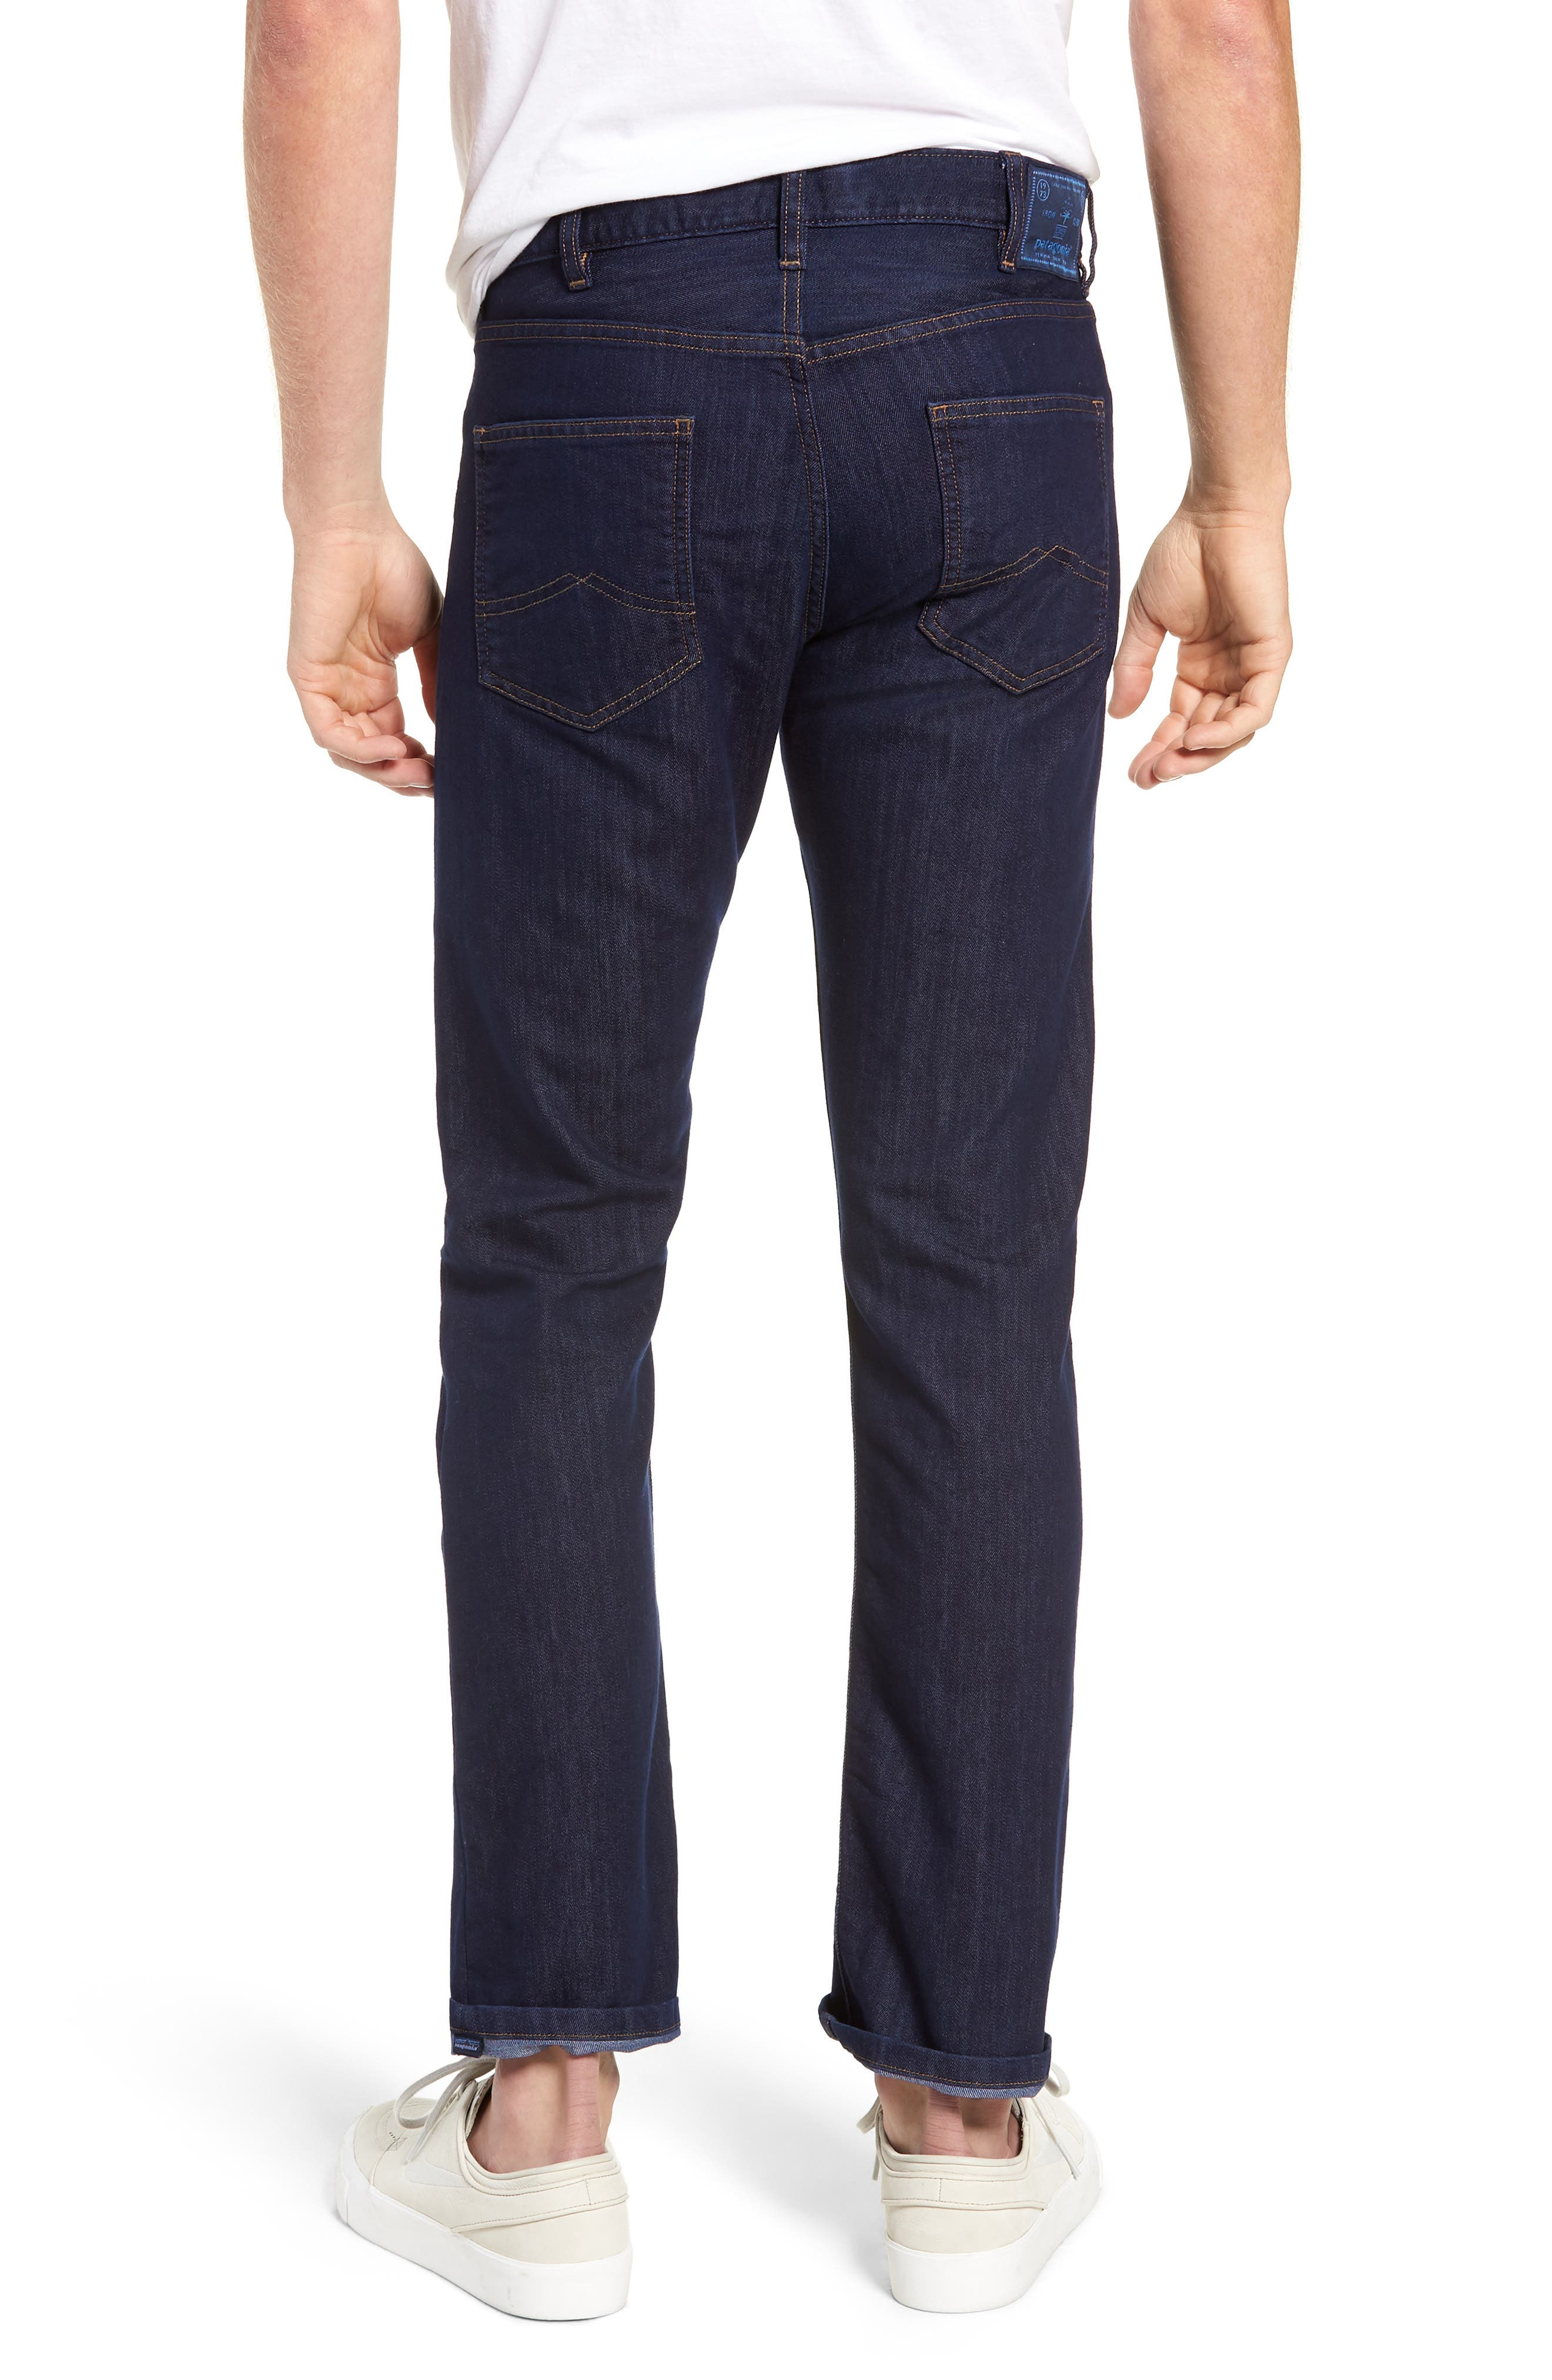 Straight Leg Performance Jeans,                             Alternate thumbnail 2, color,                             DARK DENIM